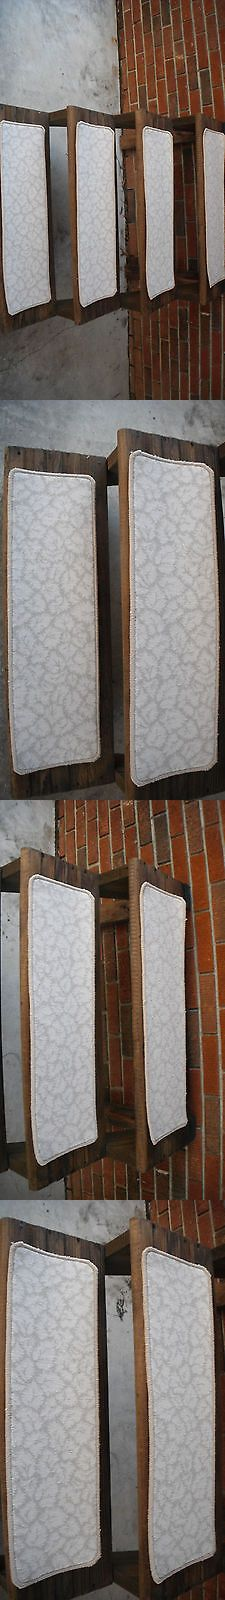 Stair Treads 175517: 13 Indoor Stair Treads 9 X30 2X3 Landing Size 100%  Woven